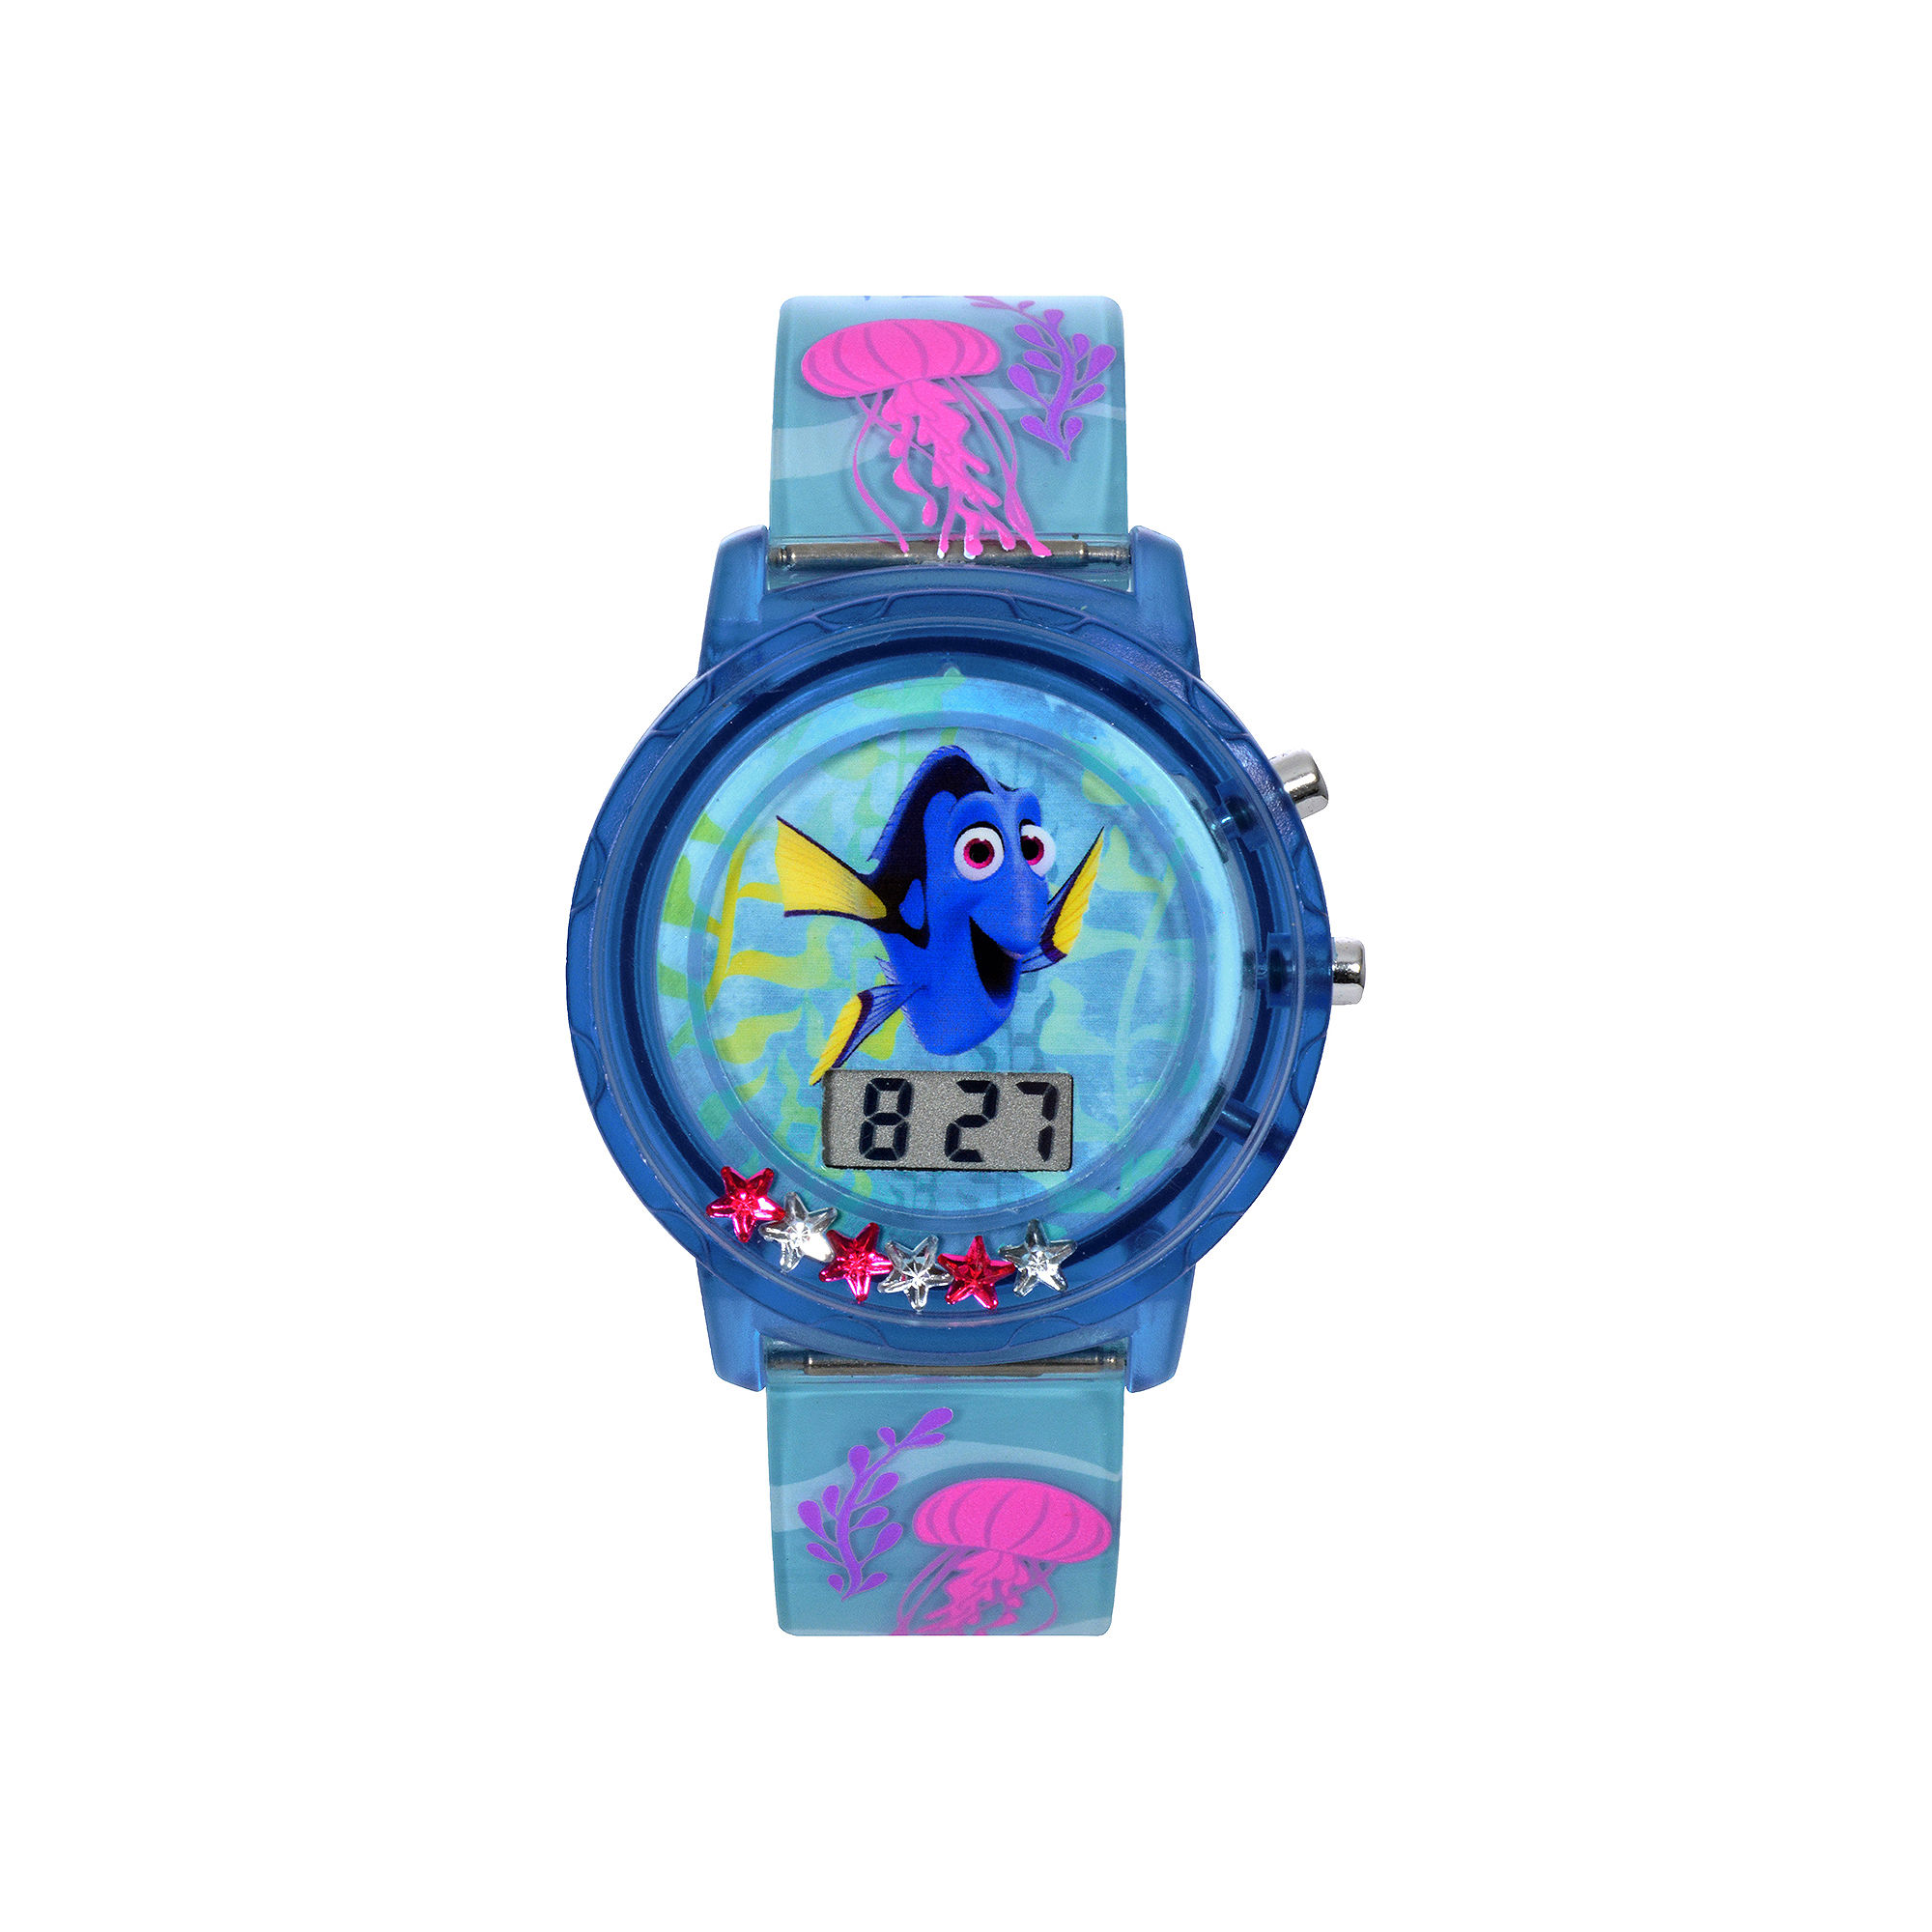 Disney Finding Dory LCD Flashing Dial With Floating Stars Plastic Watch